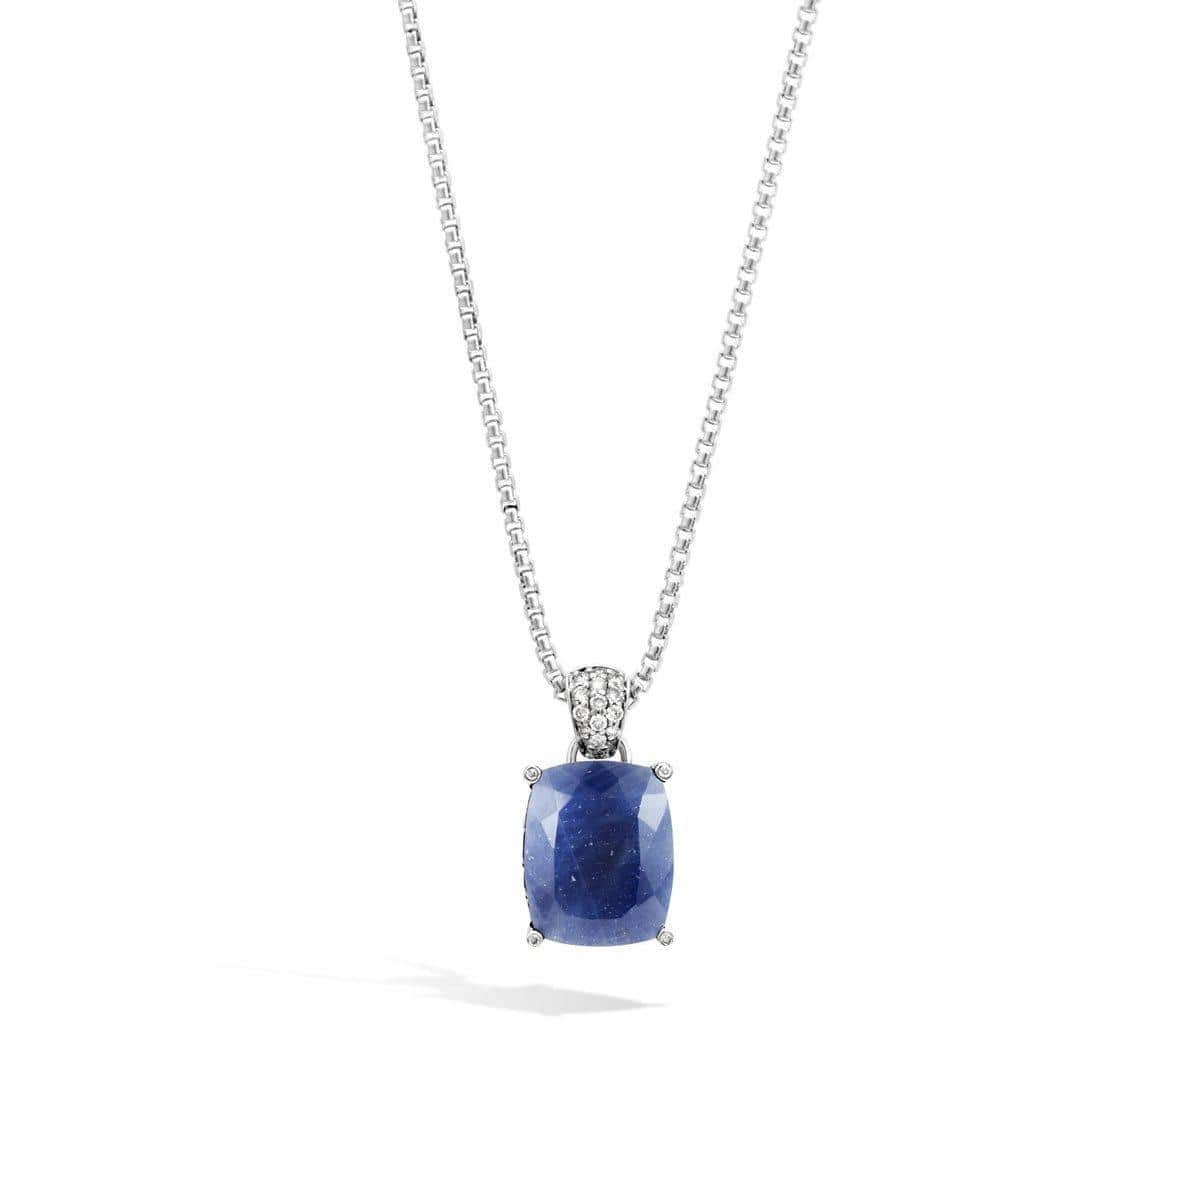 Classic Chain Magic Cut Pendant, Blue Sapphire and Diamonds - NBS971571BSPDI-John Hardy-Renee Taylor Gallery